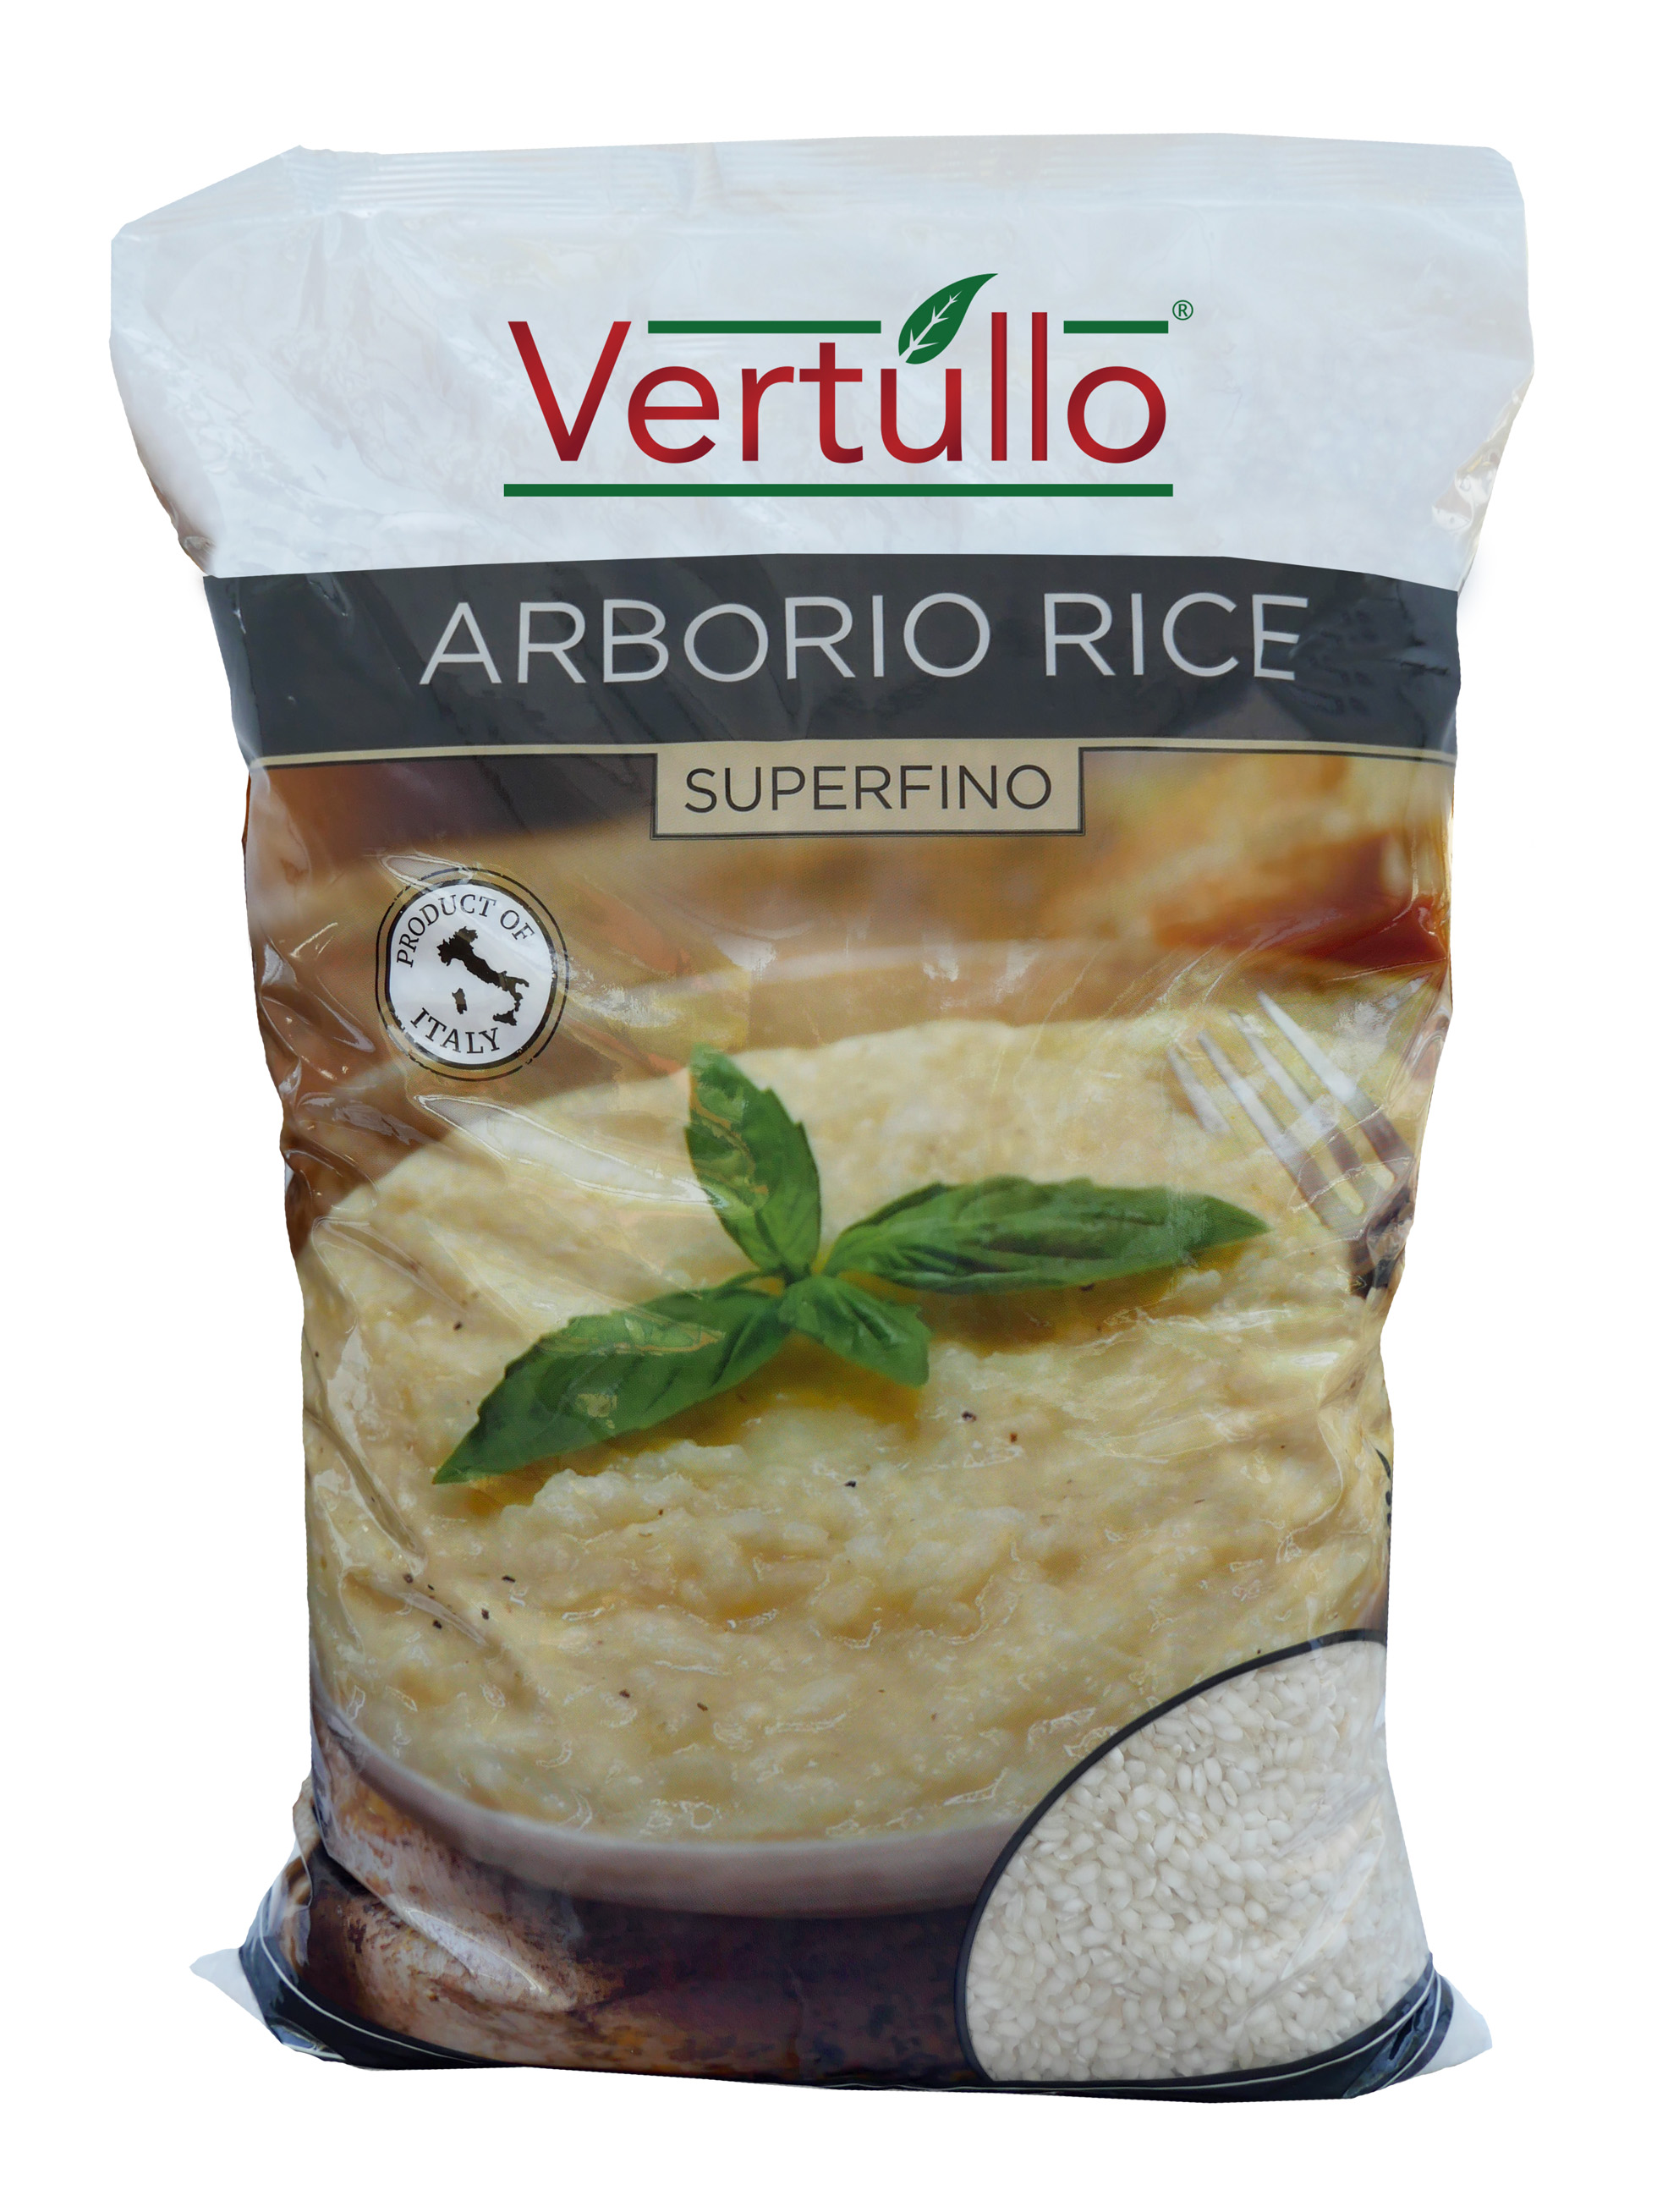 ARBORIO RICE - SUPERFINO - Arborio Rice is an Italian short-grain rice with a pearly white exterior. Arborio Rice undergoes less milling than ordinary long-grained rice, allowing it to retain more of its natural starch content. Cooking releases this starch, creating a creamy yet chewy bite, which makes it the perfect ingredient for risottos.Item 02460 // Case Pack: 4/5 Kg Bags // Case Net Wt: 44 lbs. // Product of Italy // MORE INFO